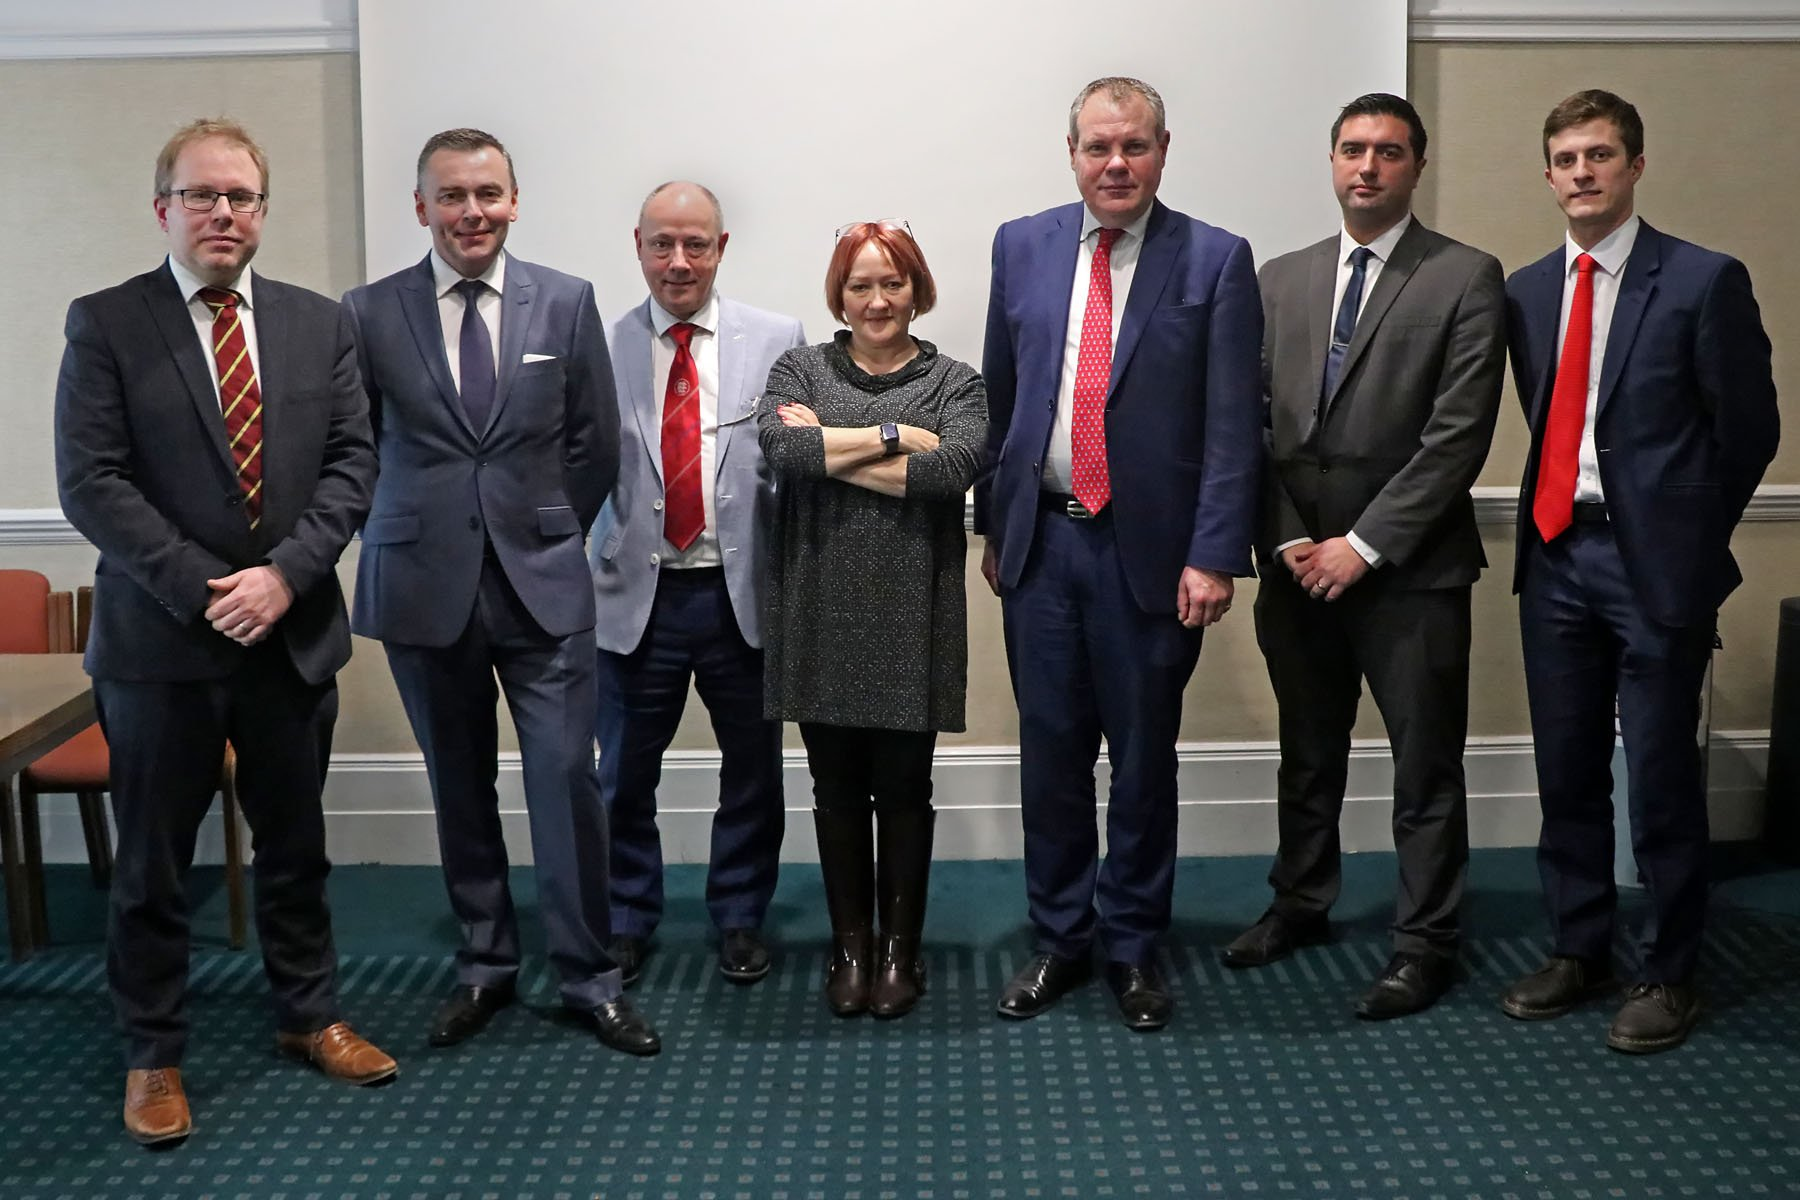 The All Parliamentary Group for Snooker